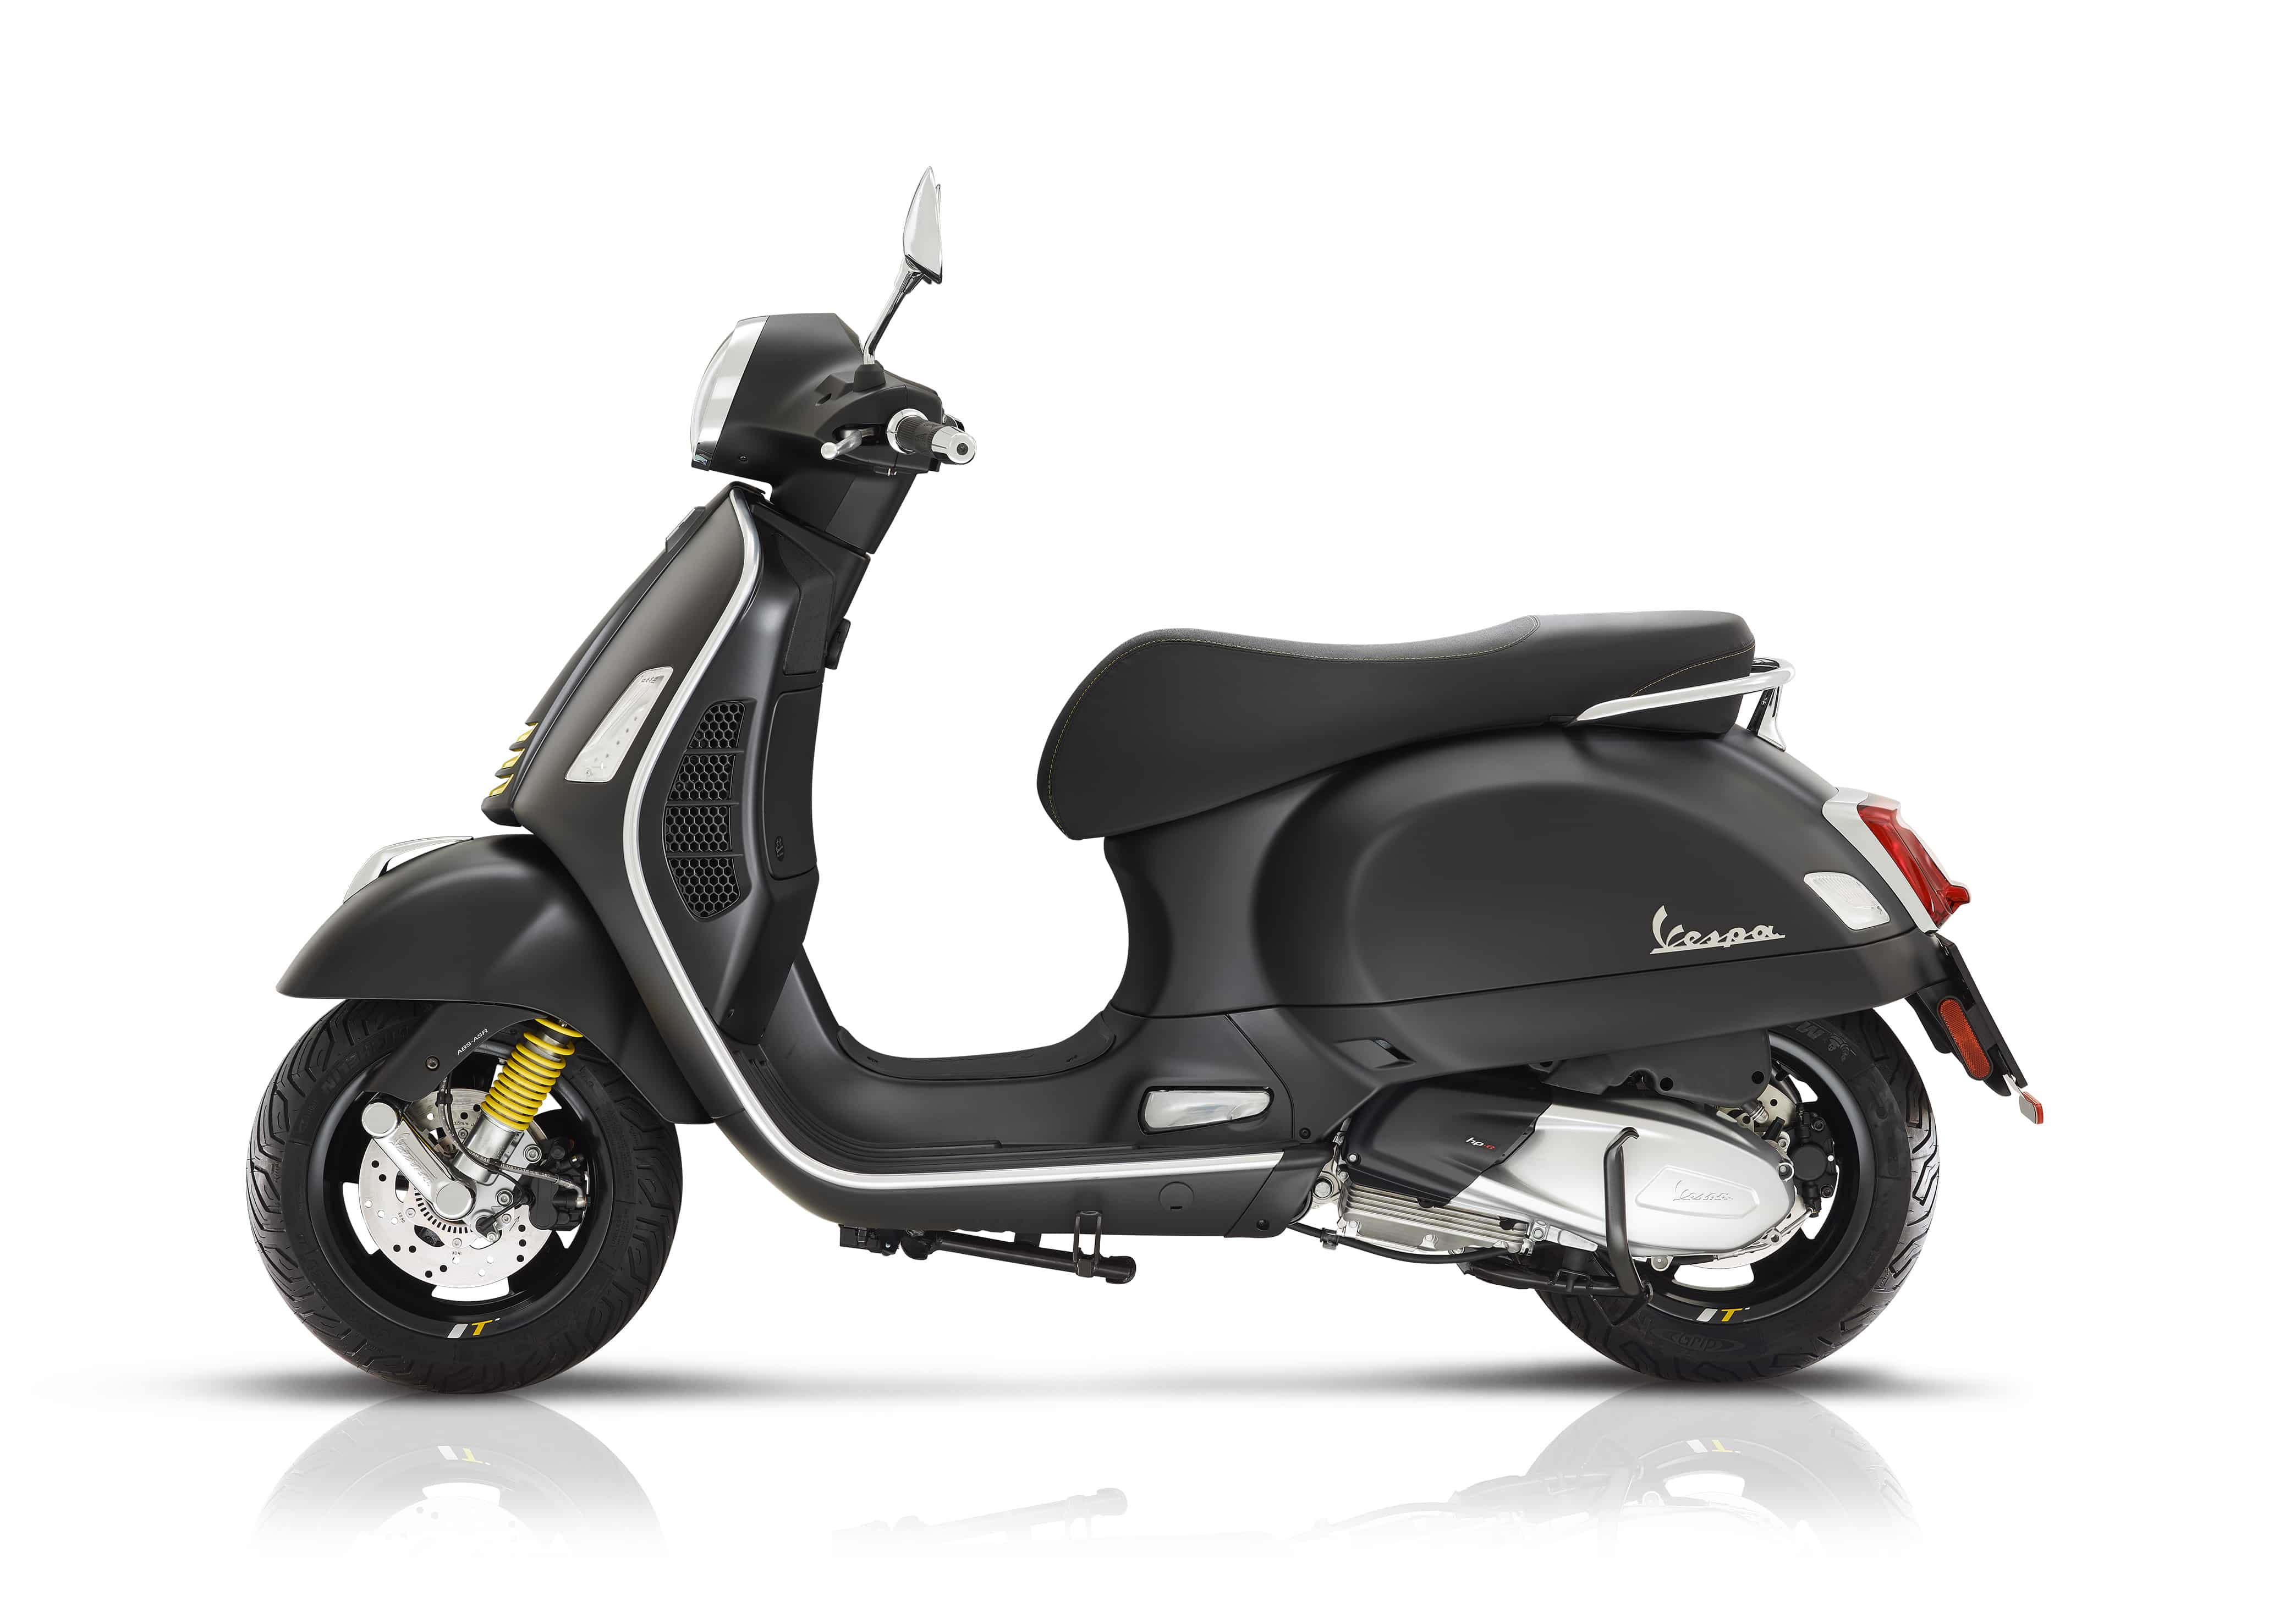 Vespa gts super tech mat zwart